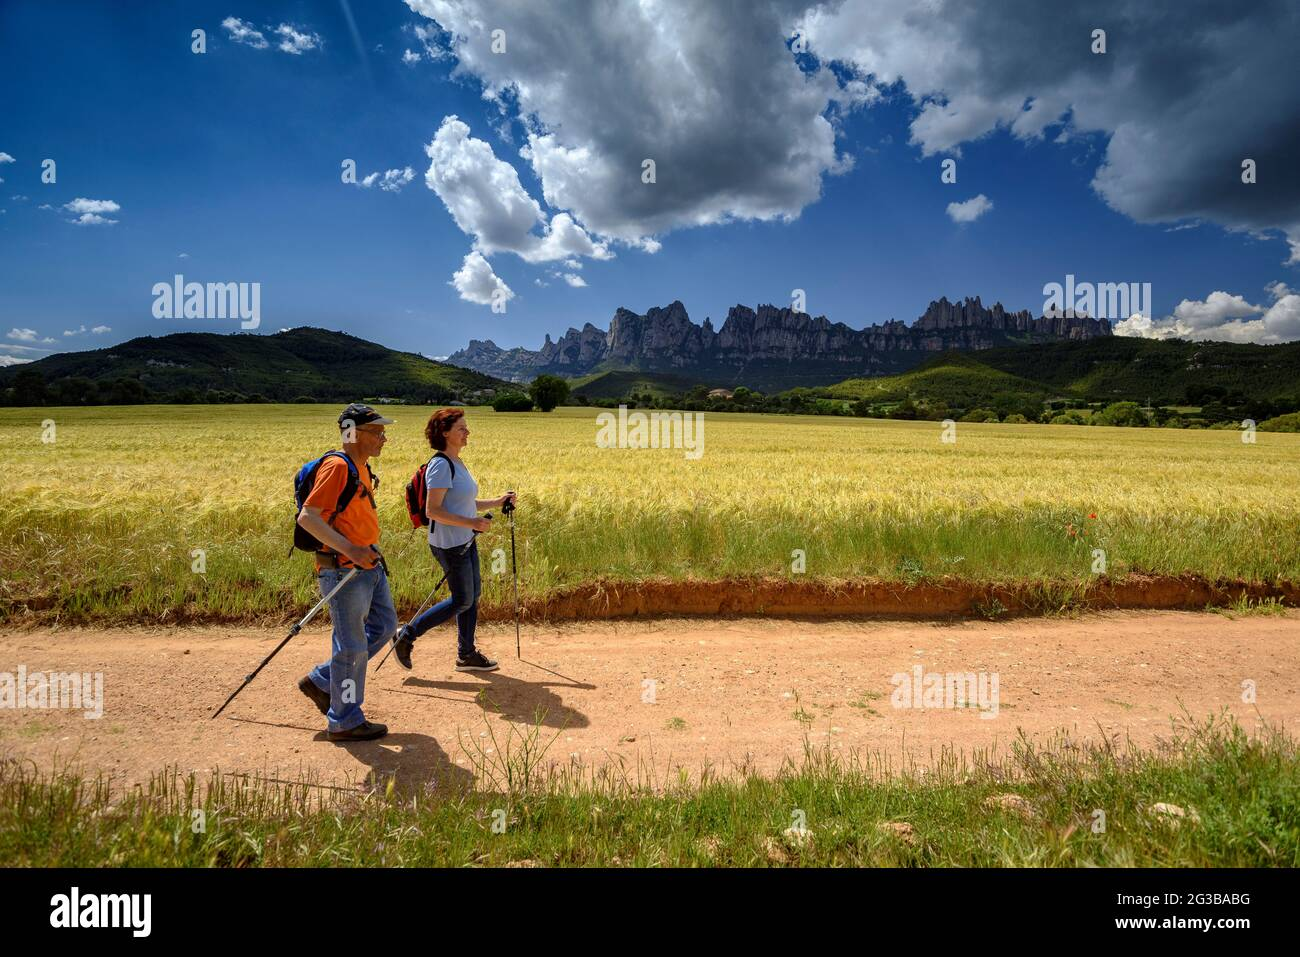 Hikers walking between fields in the Pla de Masroig, with the mountain of Montserrat in the background (Bages, Barcelona, Catalonia, Spain) Stock Photo